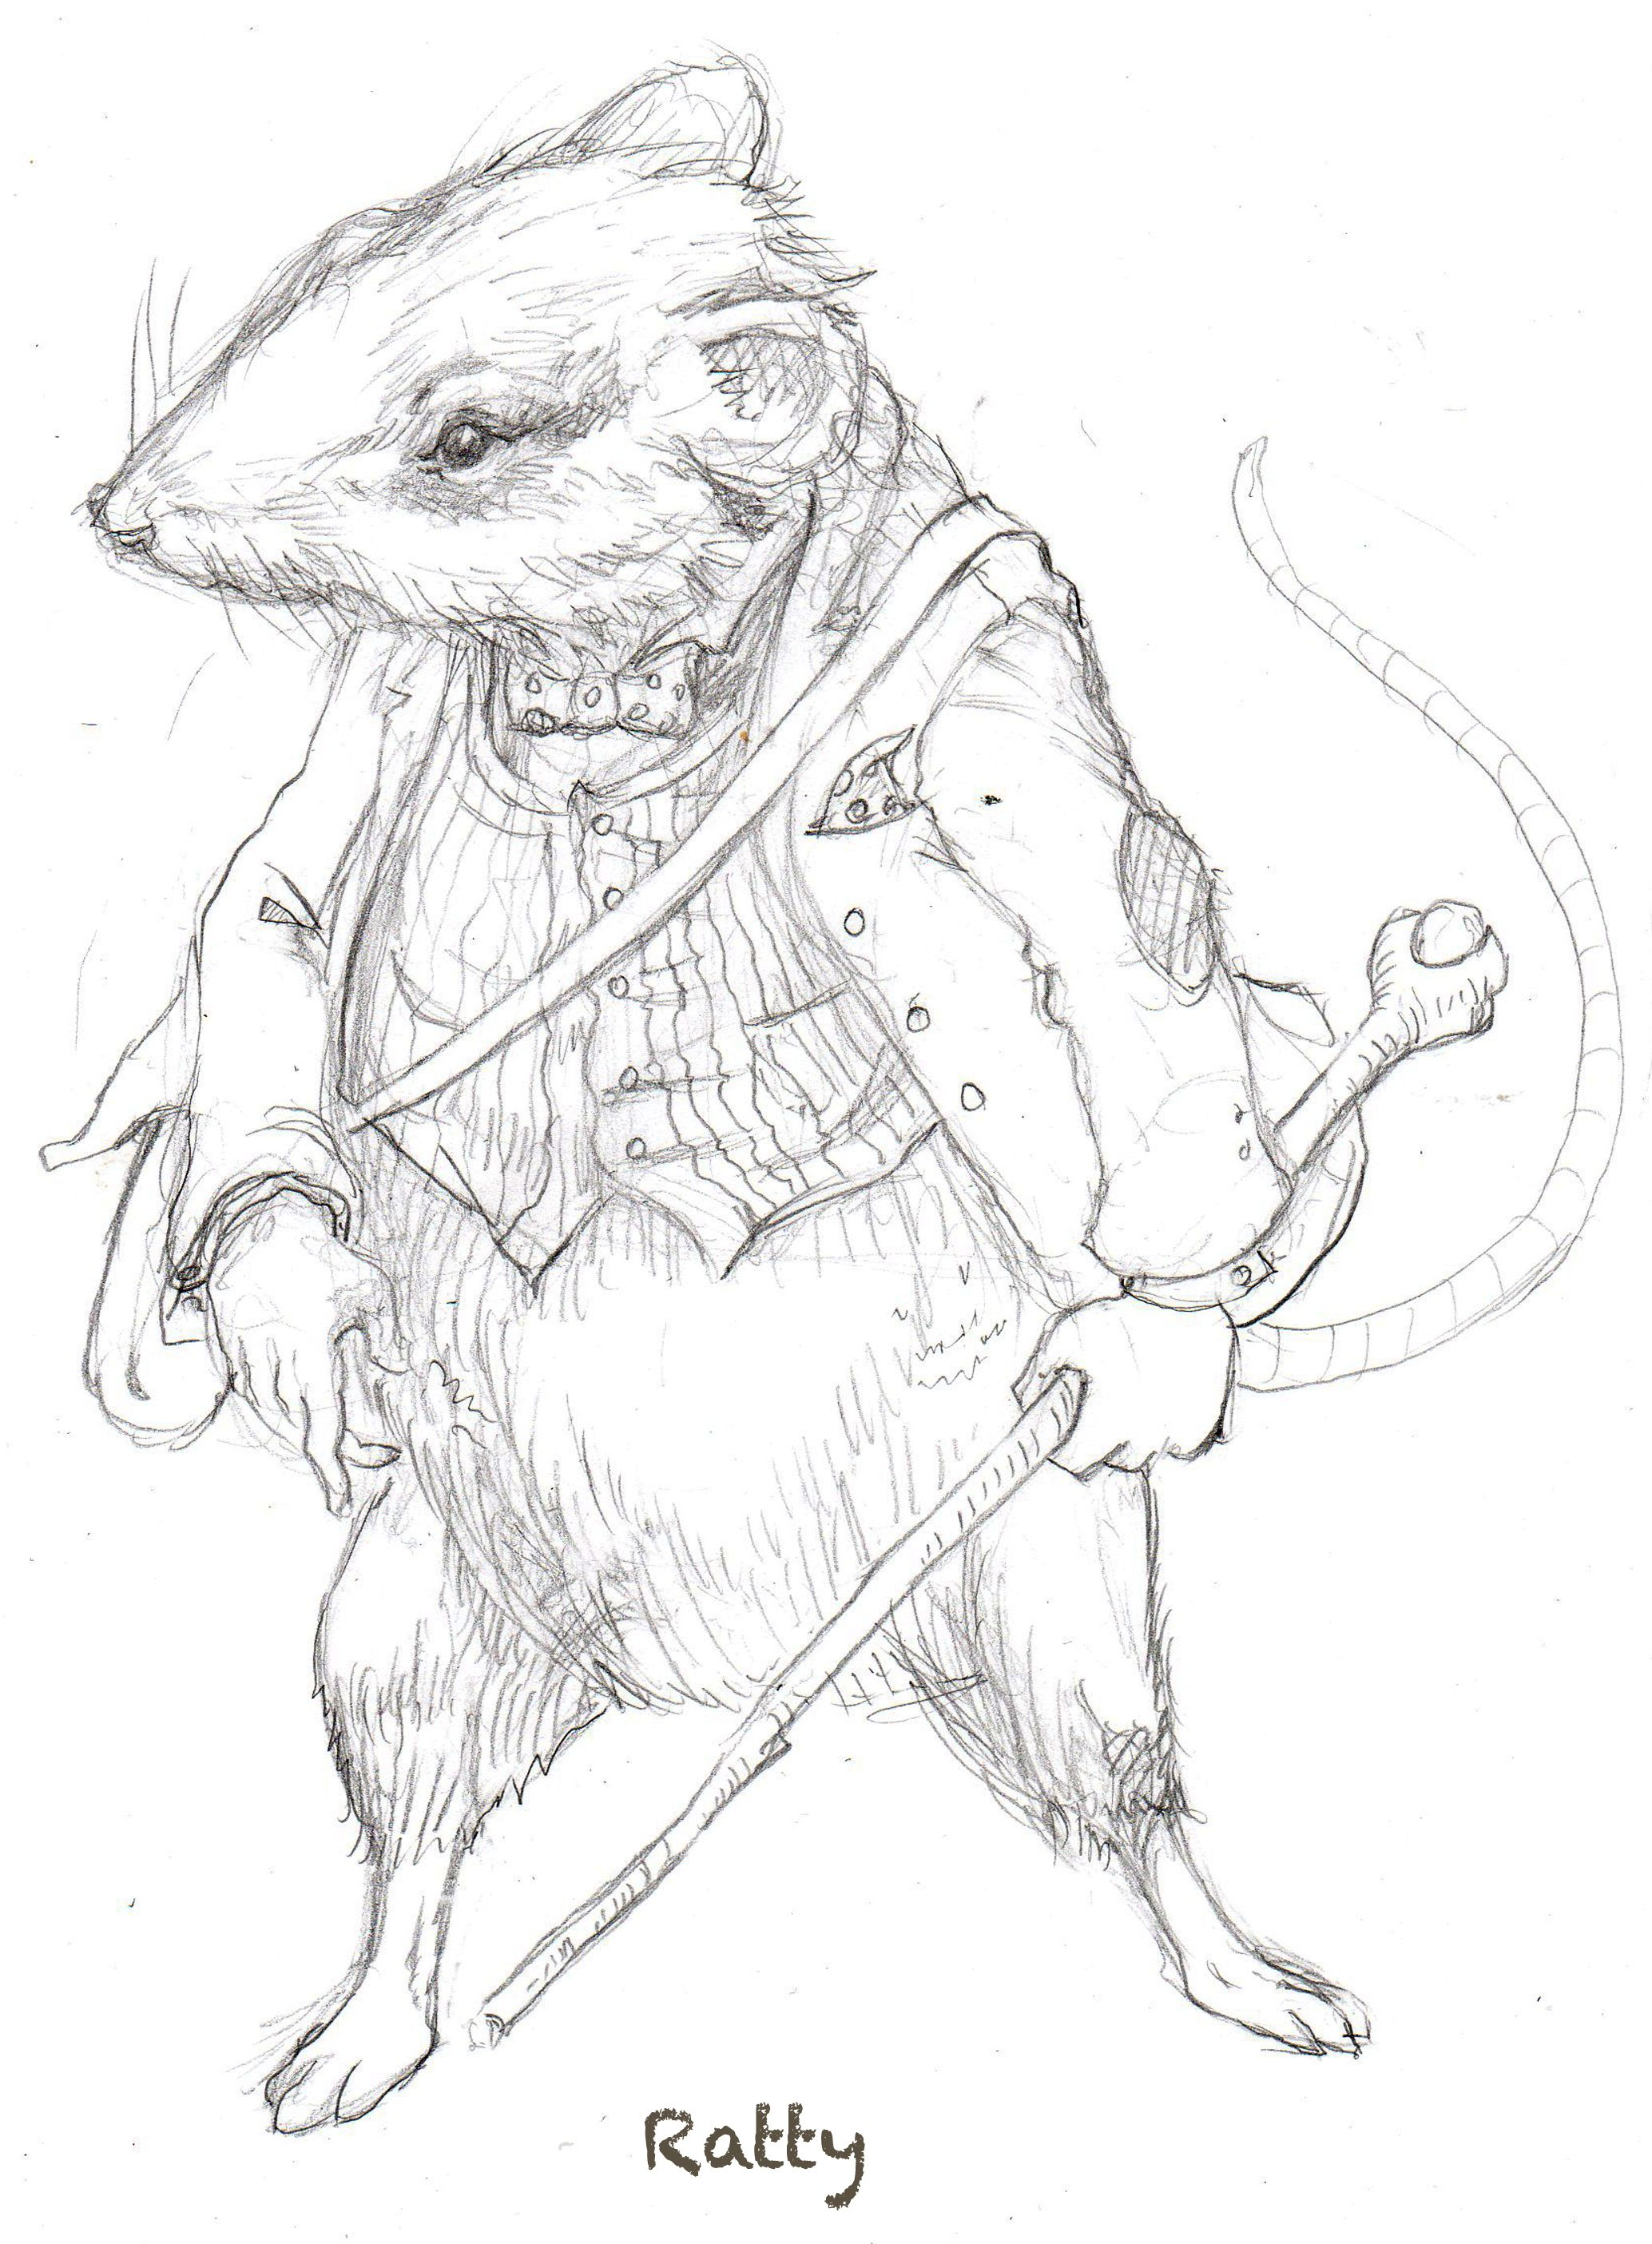 Ratty From The Wind In The Willows App